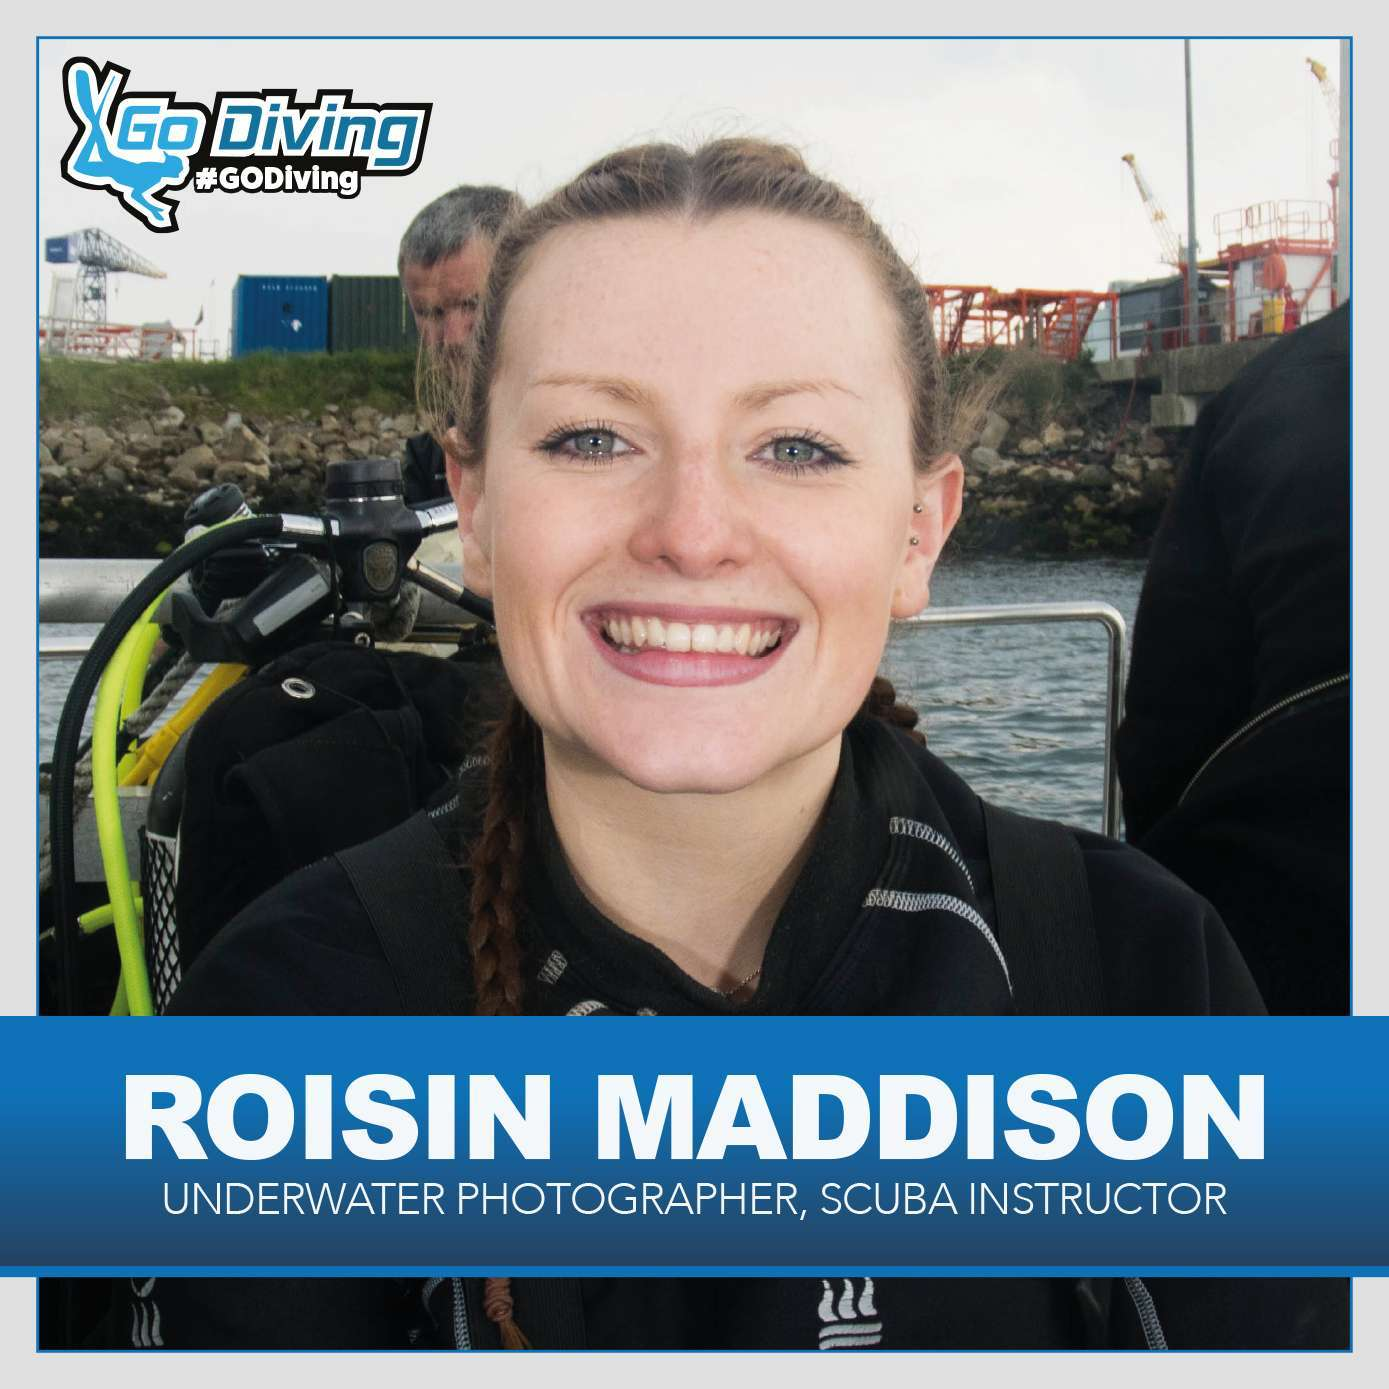 GO Diving Speaker Profile: Roisin Maddison 1